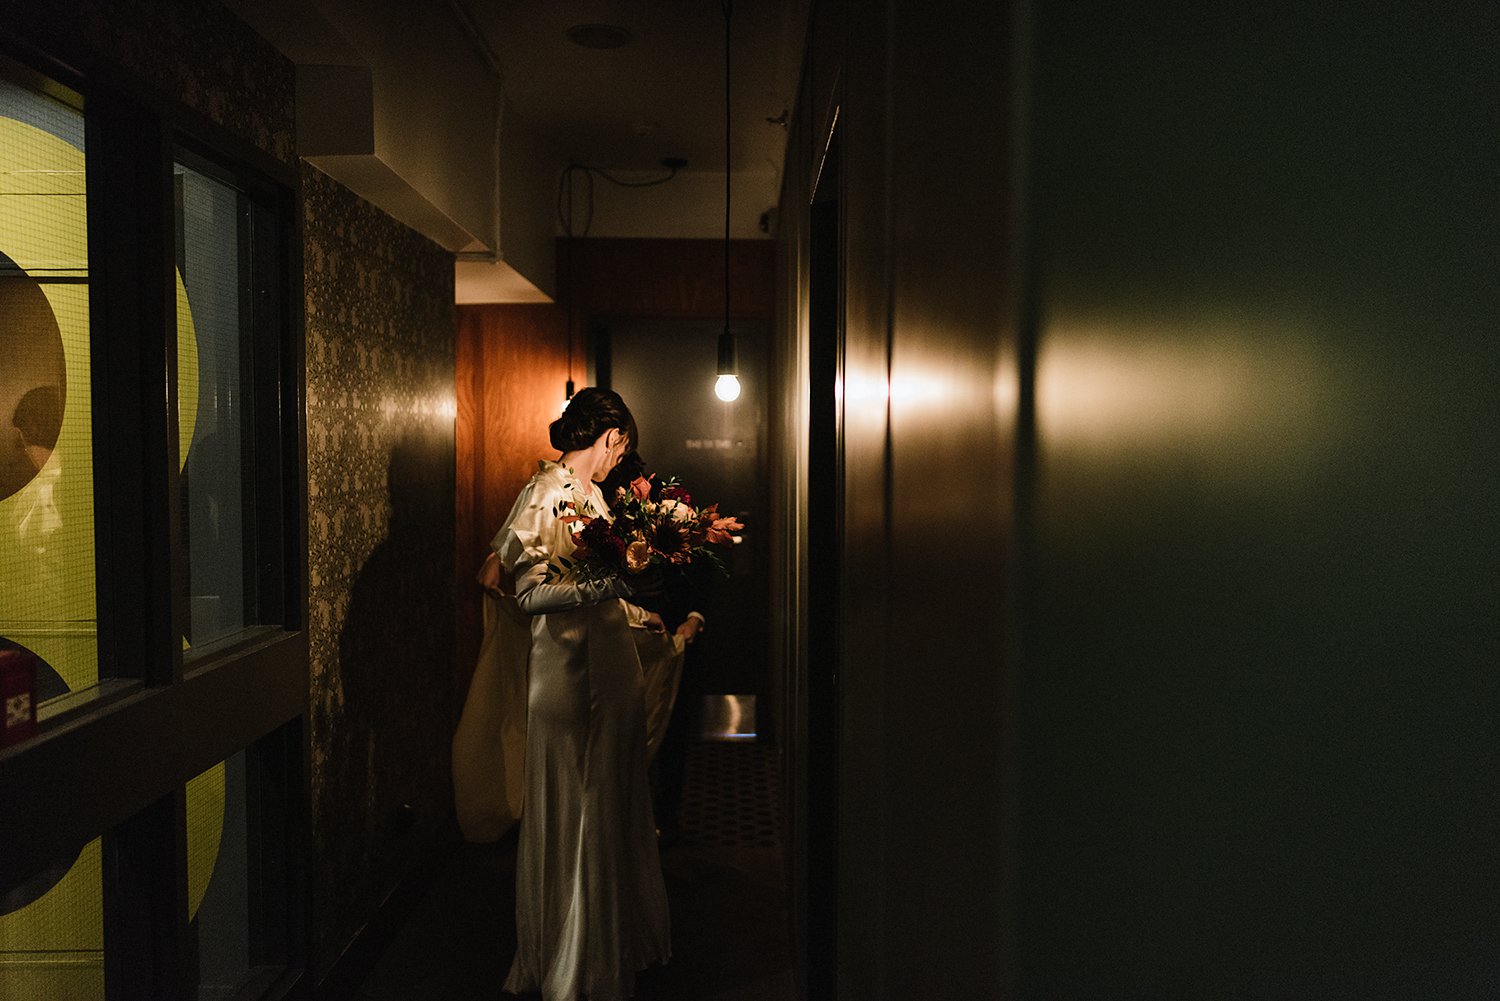 bride-and-groom-entering-together-ceremony-space-moody-candlelit-cinematic-marriage-Toronto-Elopement-at-the-Drake-Hotel-pop-up-Torontos-Best-wedding-photographers-candid-documentary-photojournalistic.jpg